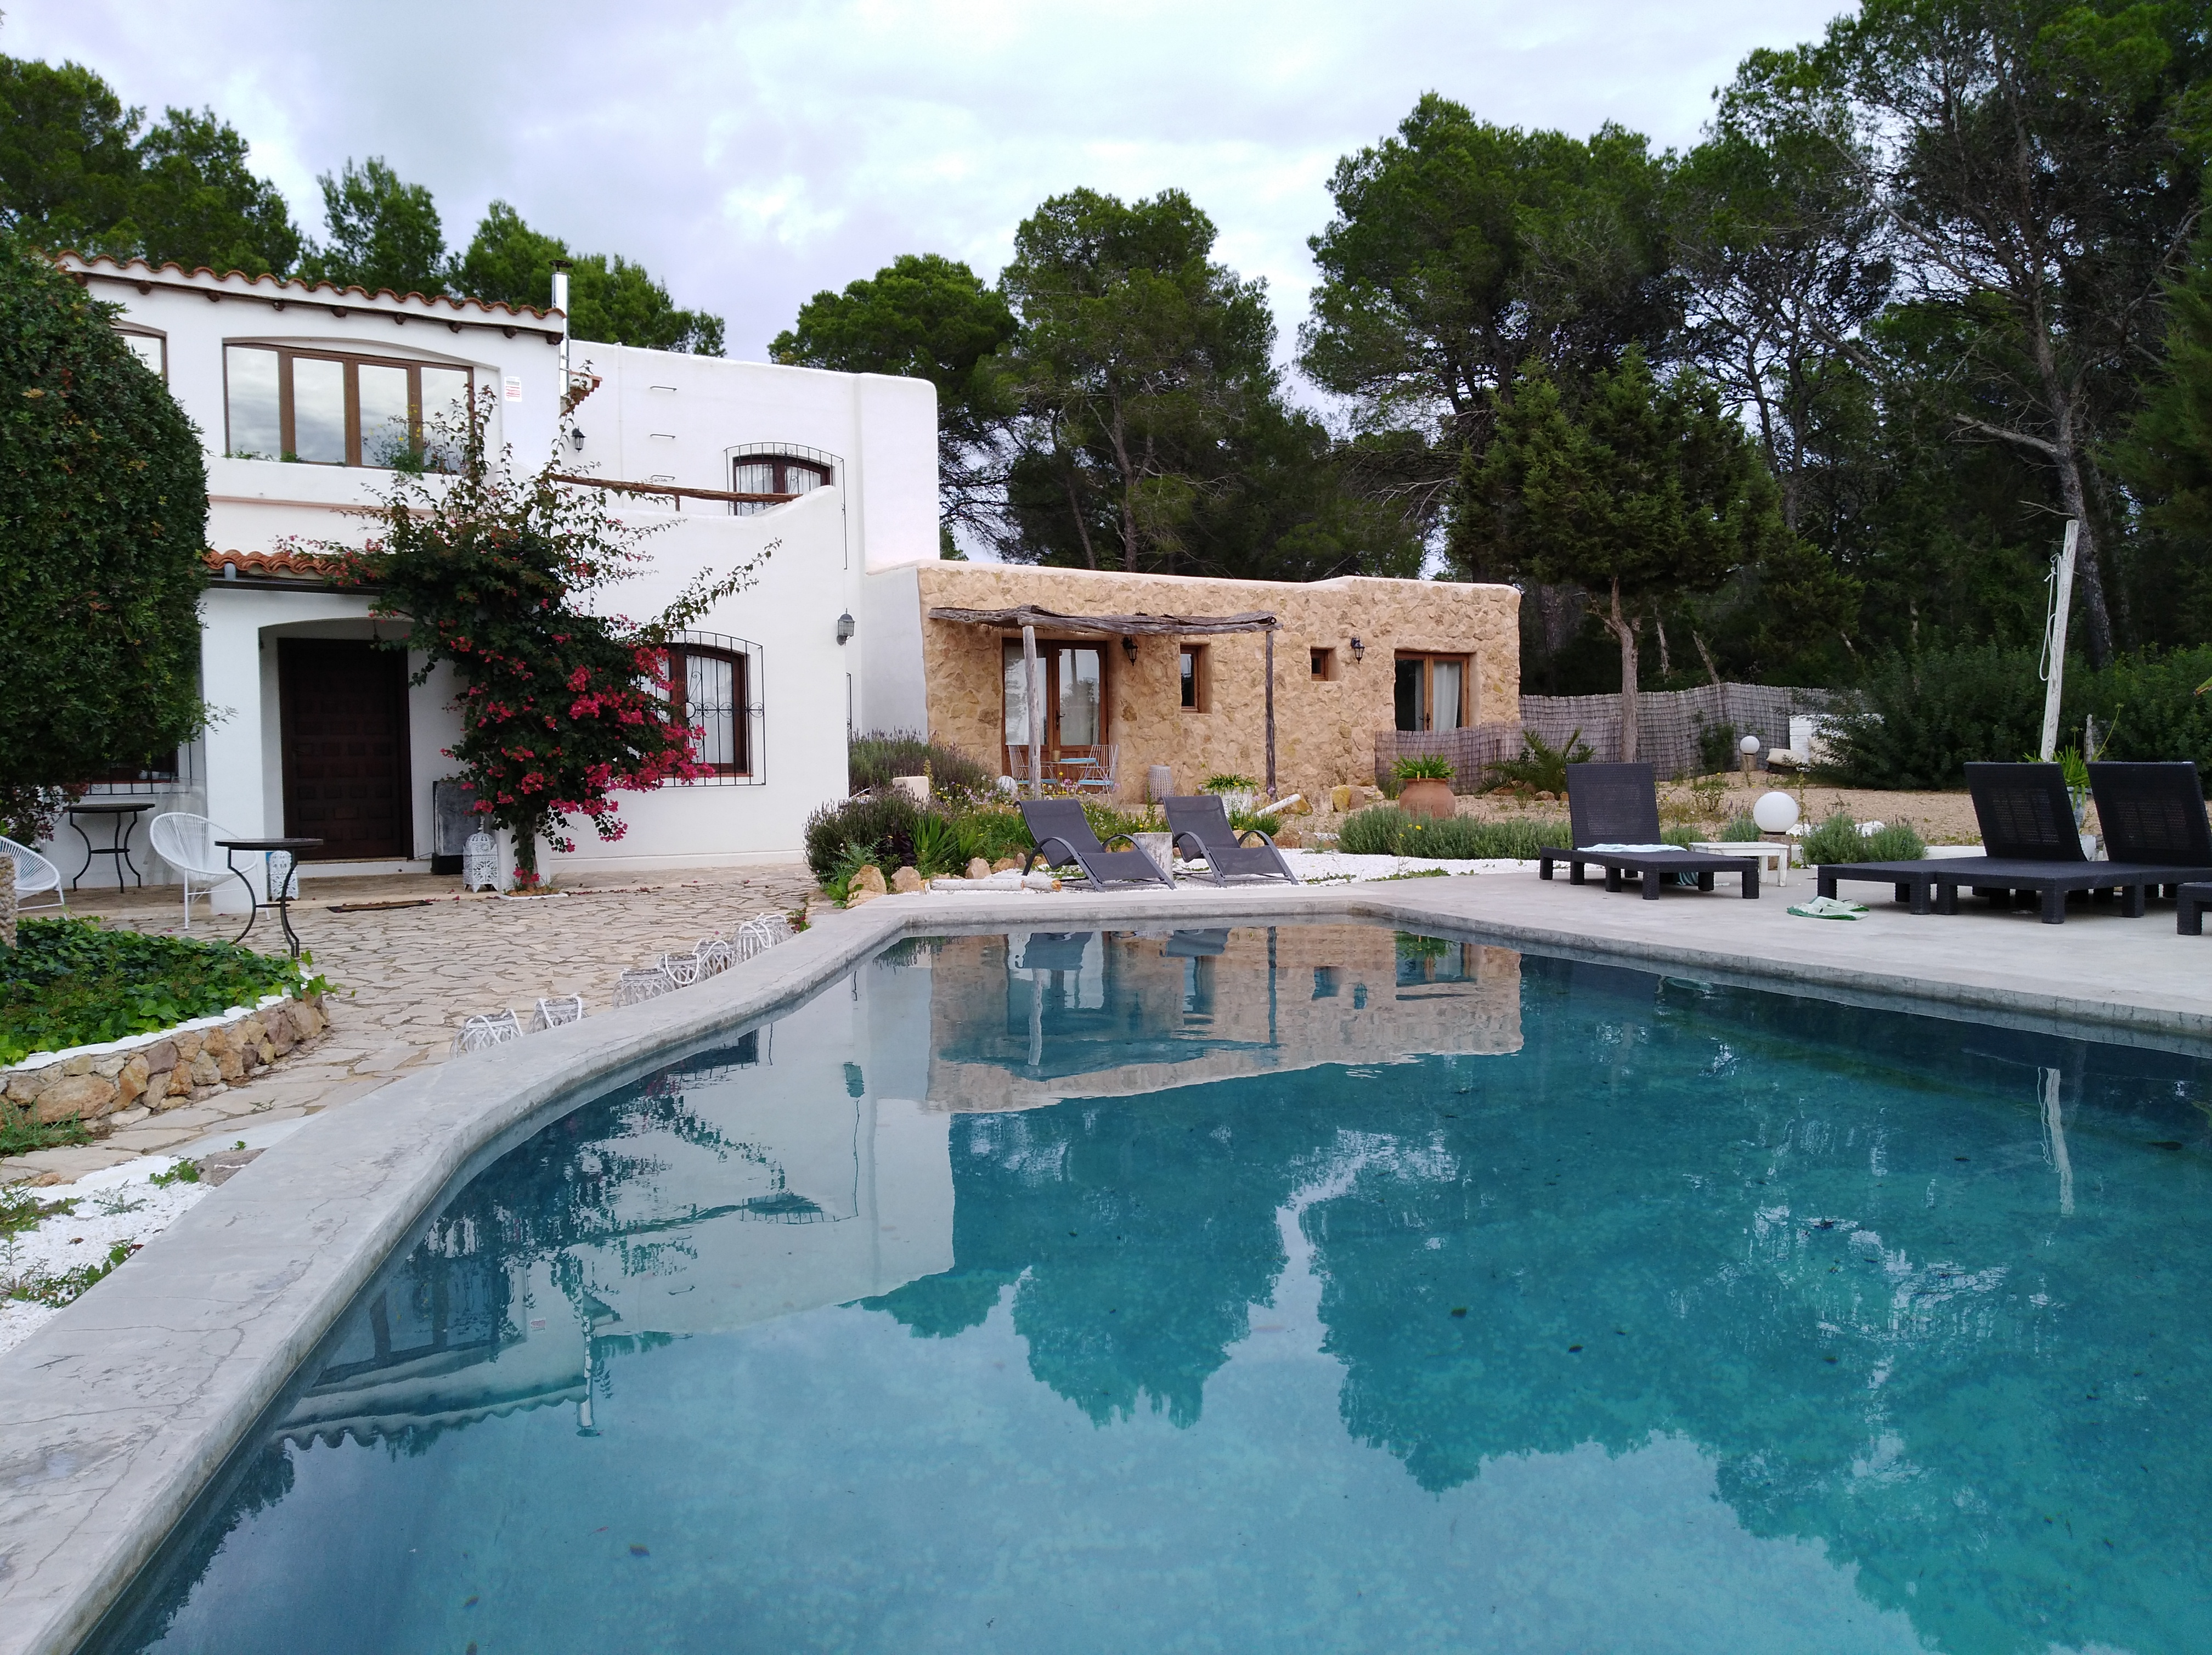 For rent all year, Santa Eulalia ibiza